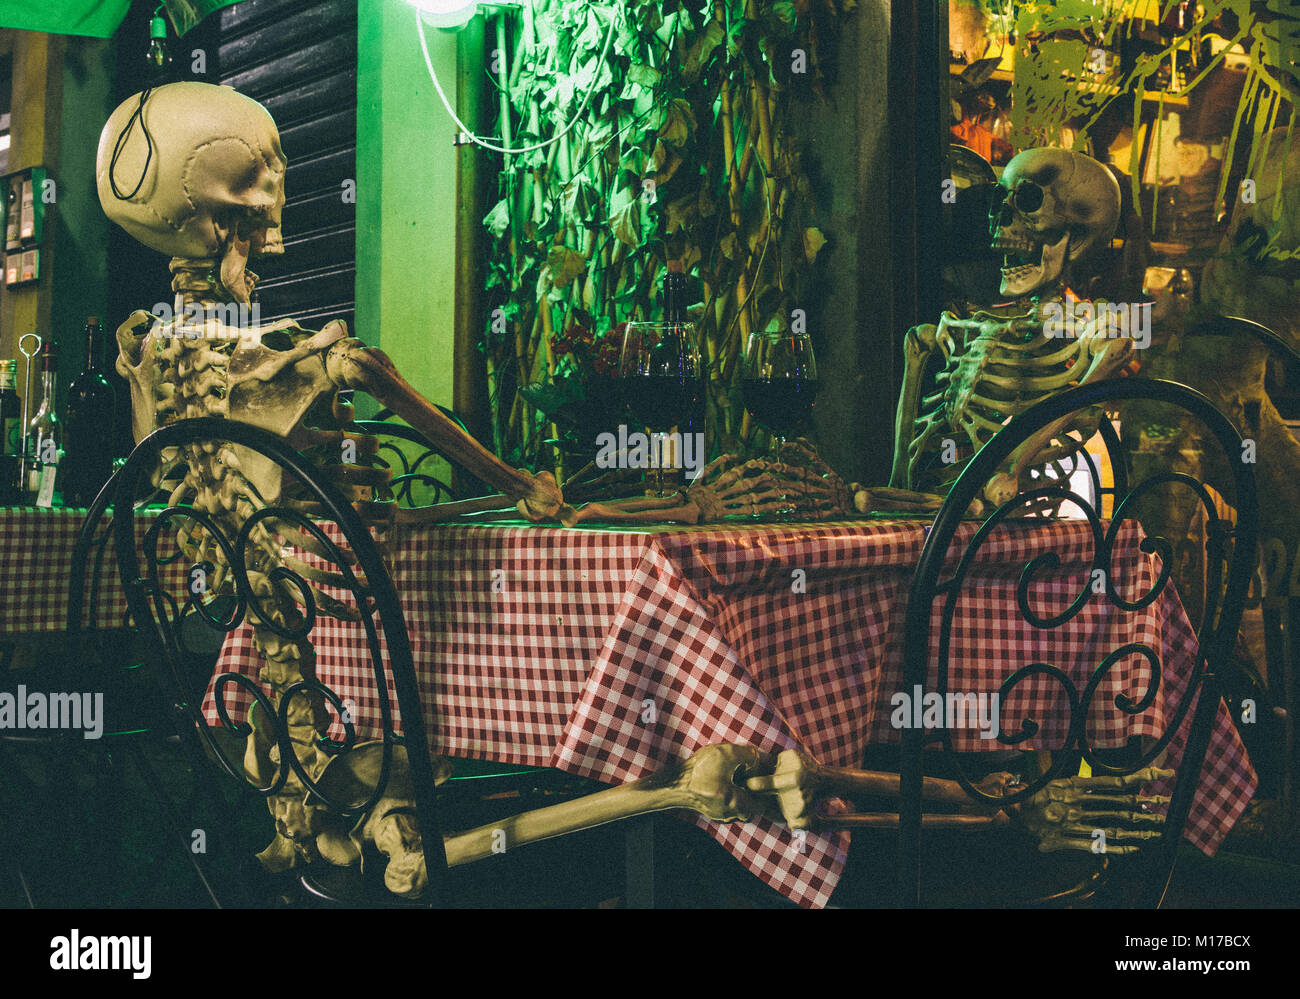 skeletons-on-a-date-halloween-concept-M17BCX.jpg